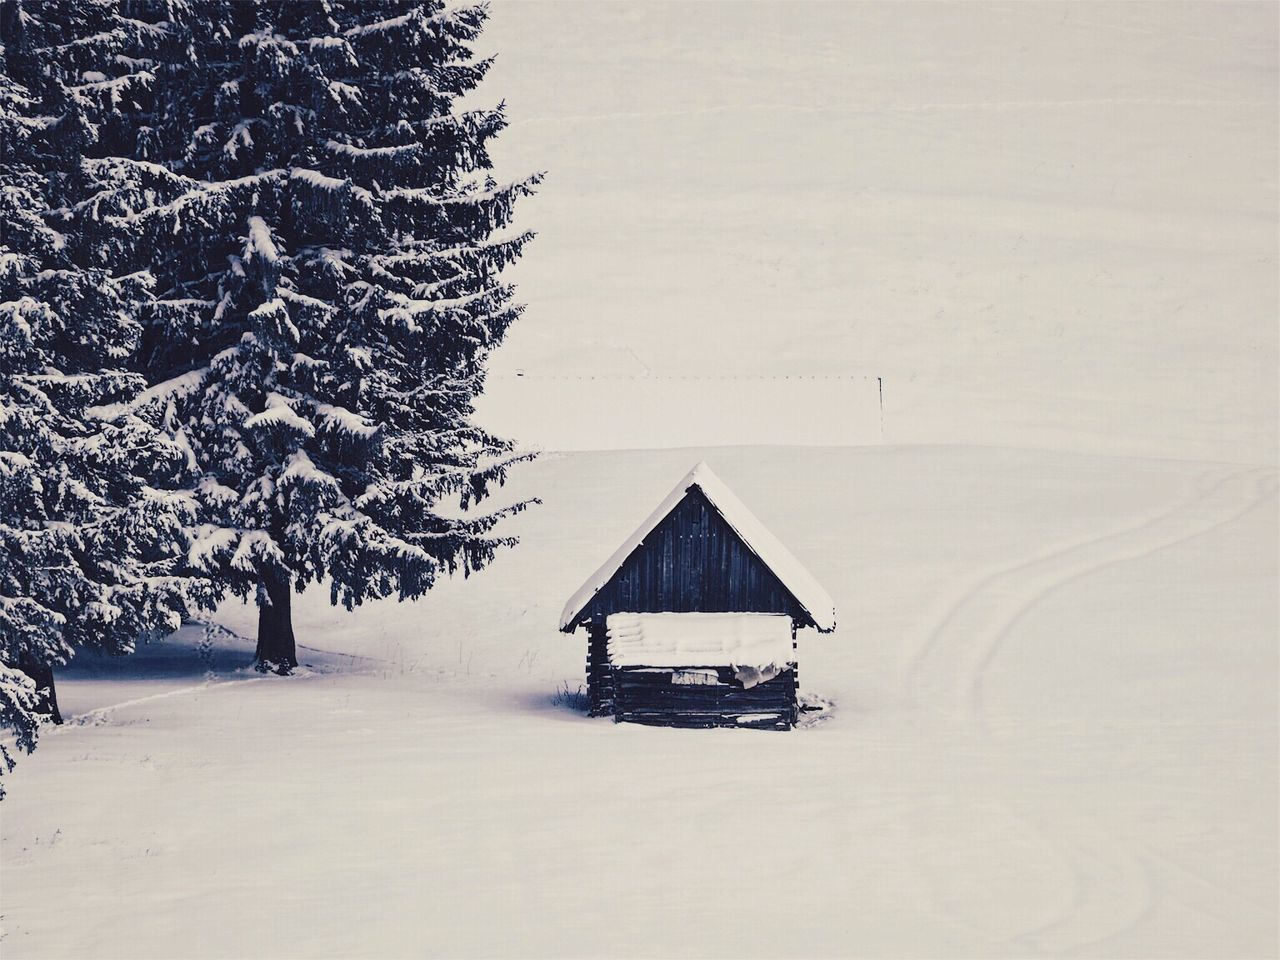 Winter Cold Temperature Snow Nature Beauty In Nature Tree No People Built Structure Scenics Landscape Tranquil Scene Outdoors Architecture Day